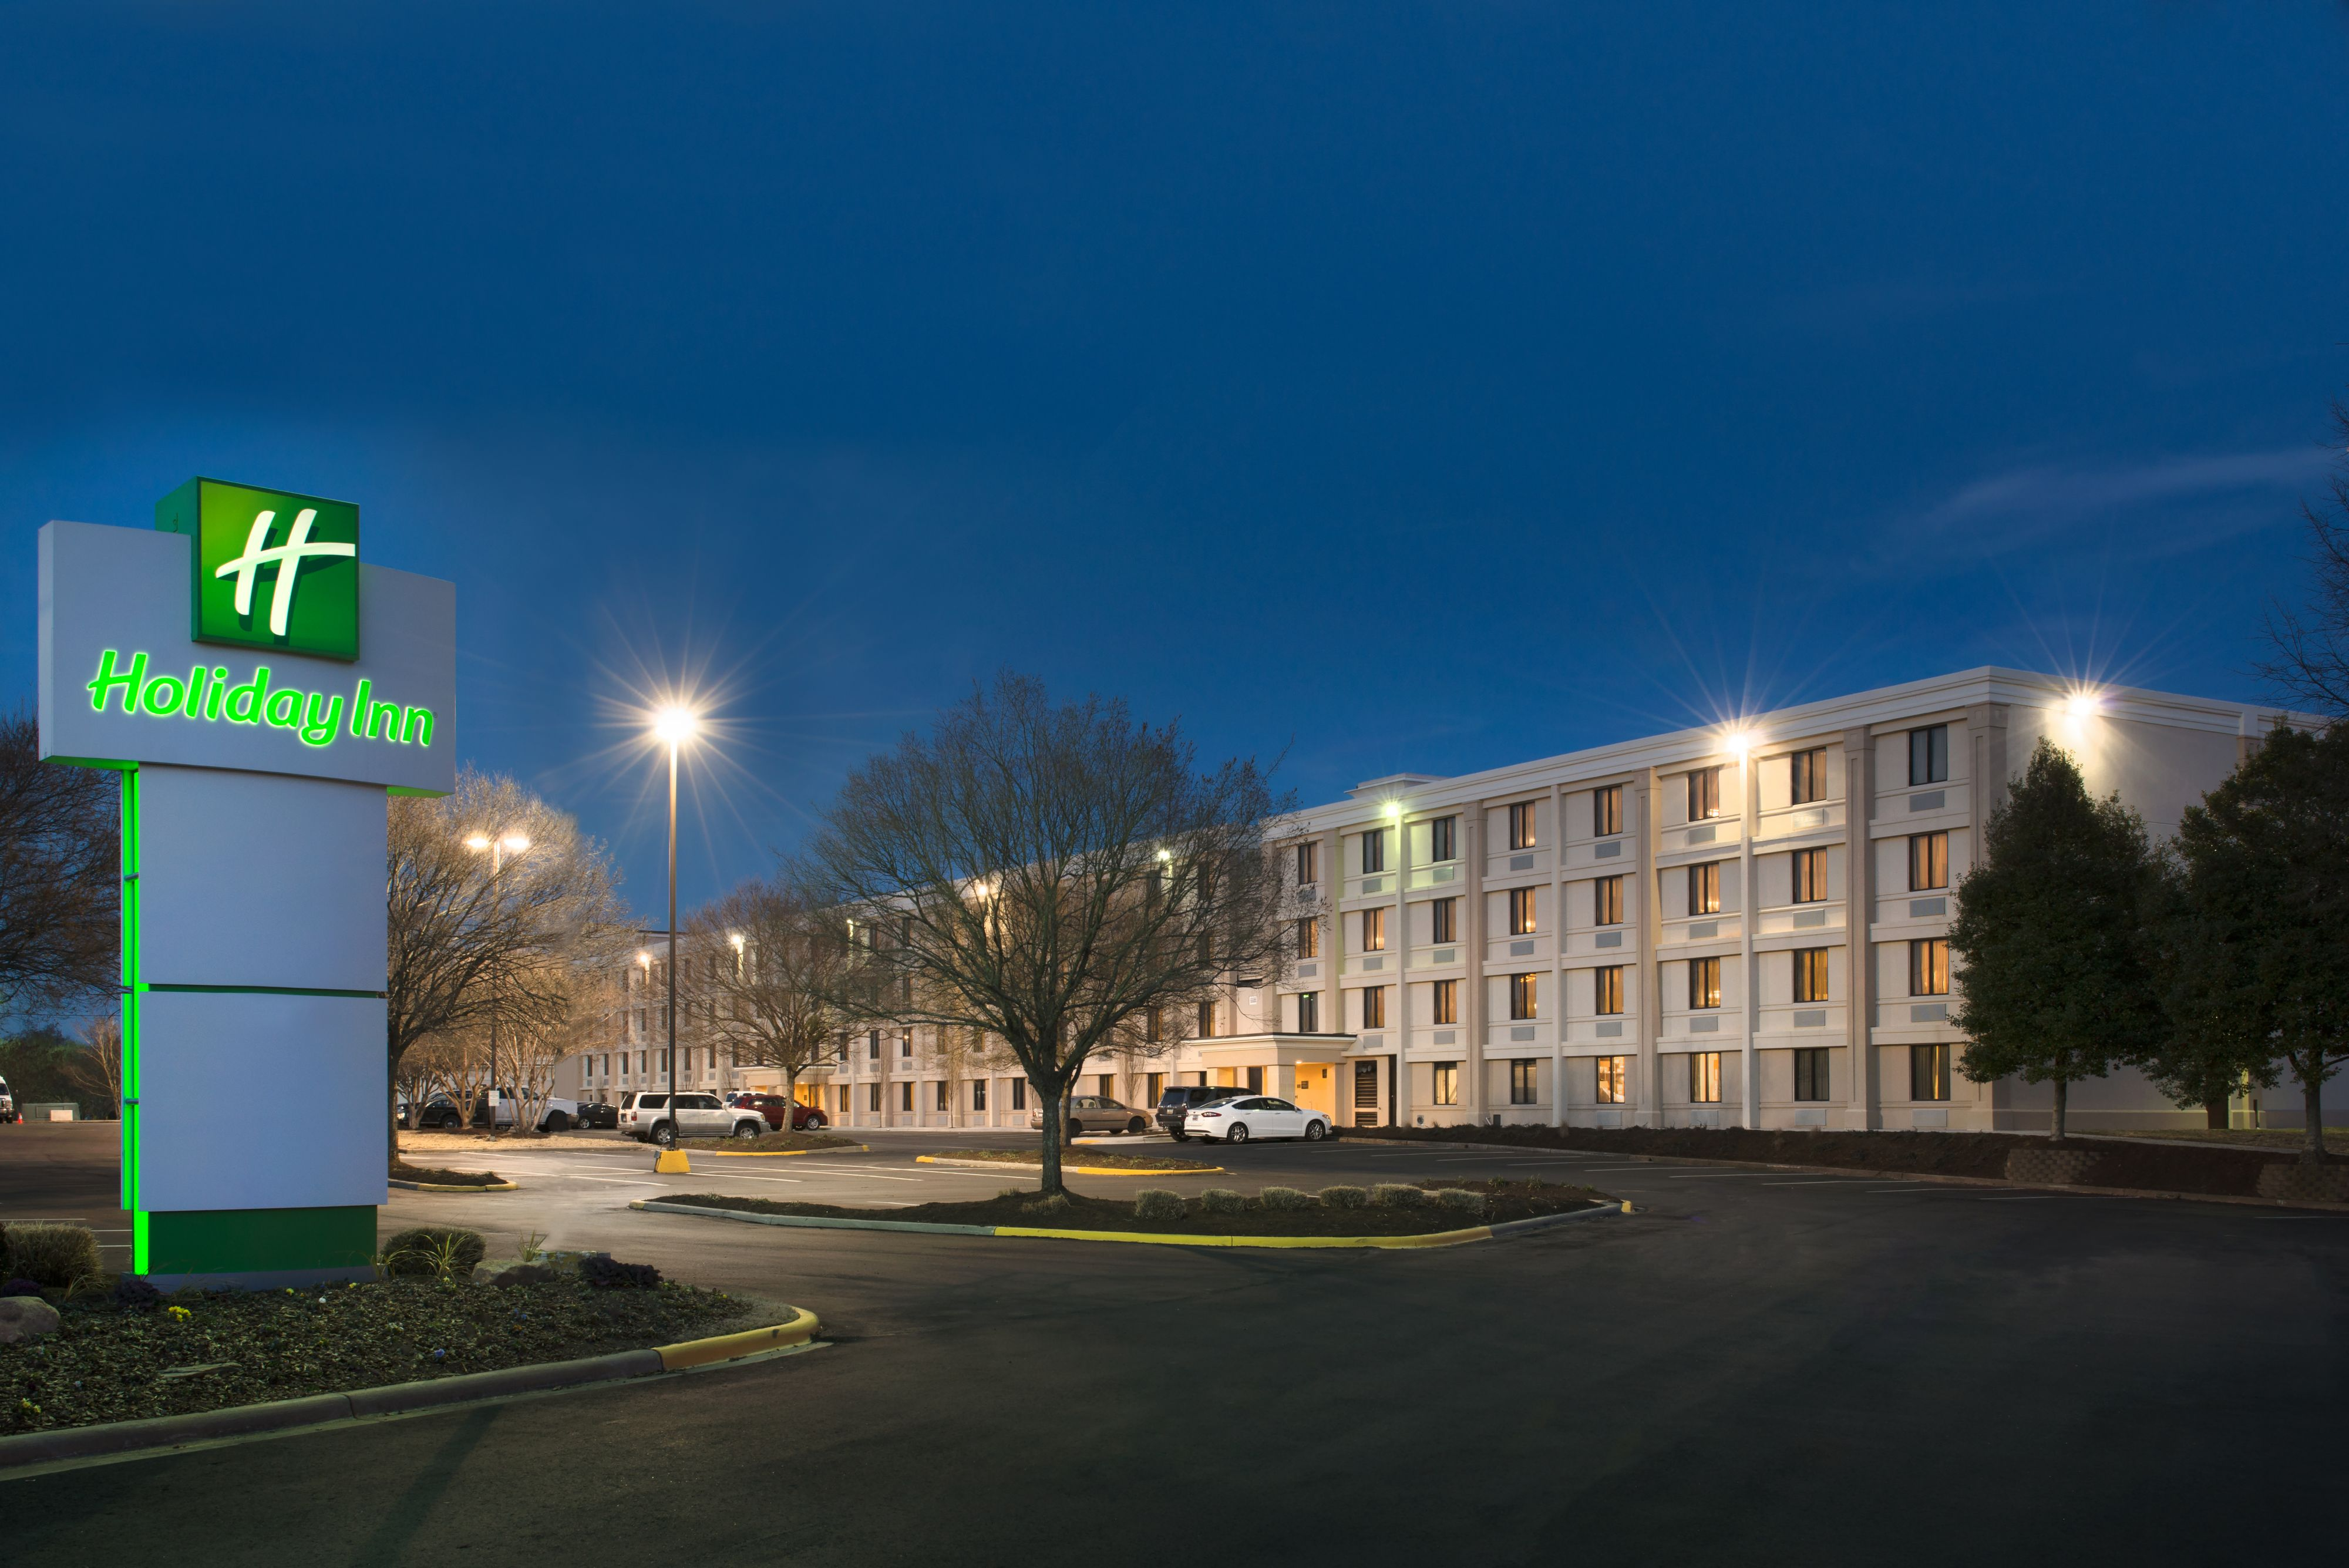 Holiday inn hotel suites charleston west in charleston for Capital city arts and crafts show charleston wv